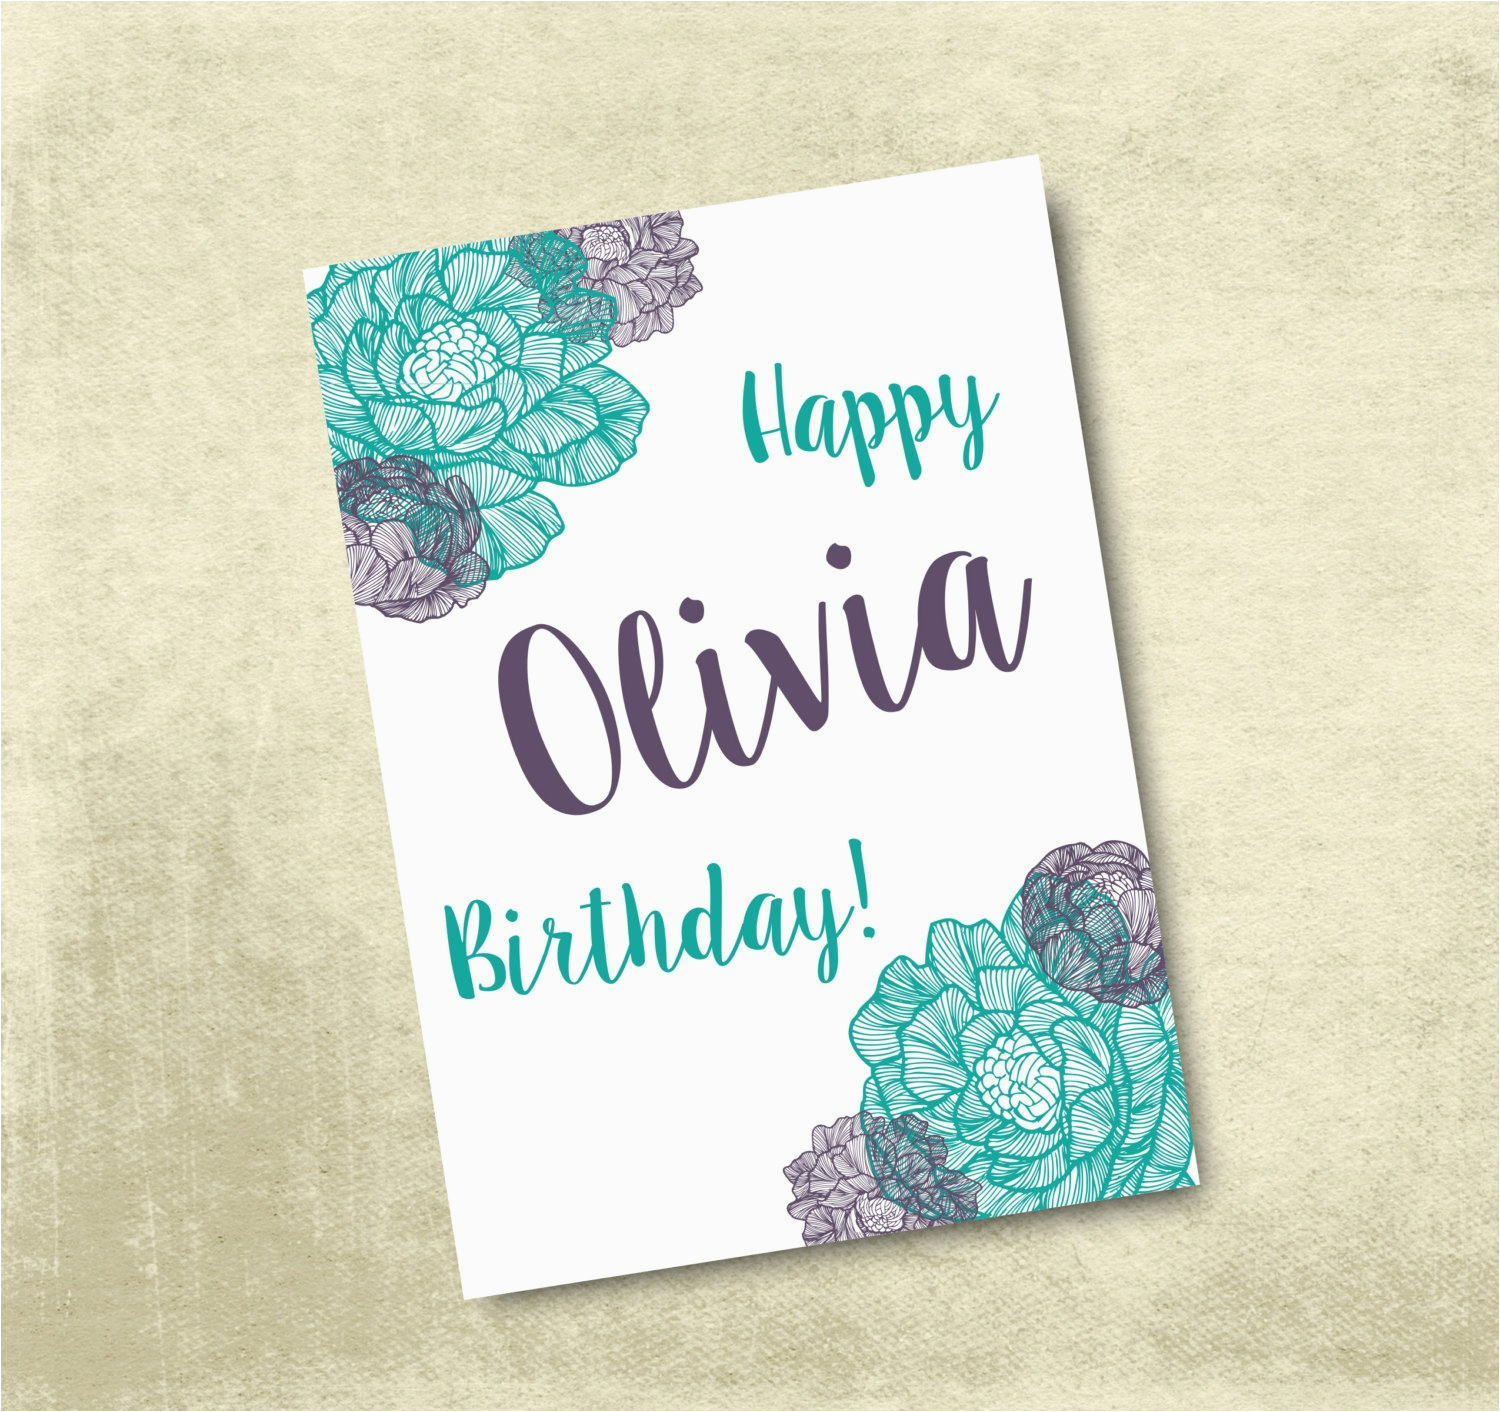 Customized Birthday Cards Free Printable | Birthdaybuzz - Customized Birthday Cards Free Printable